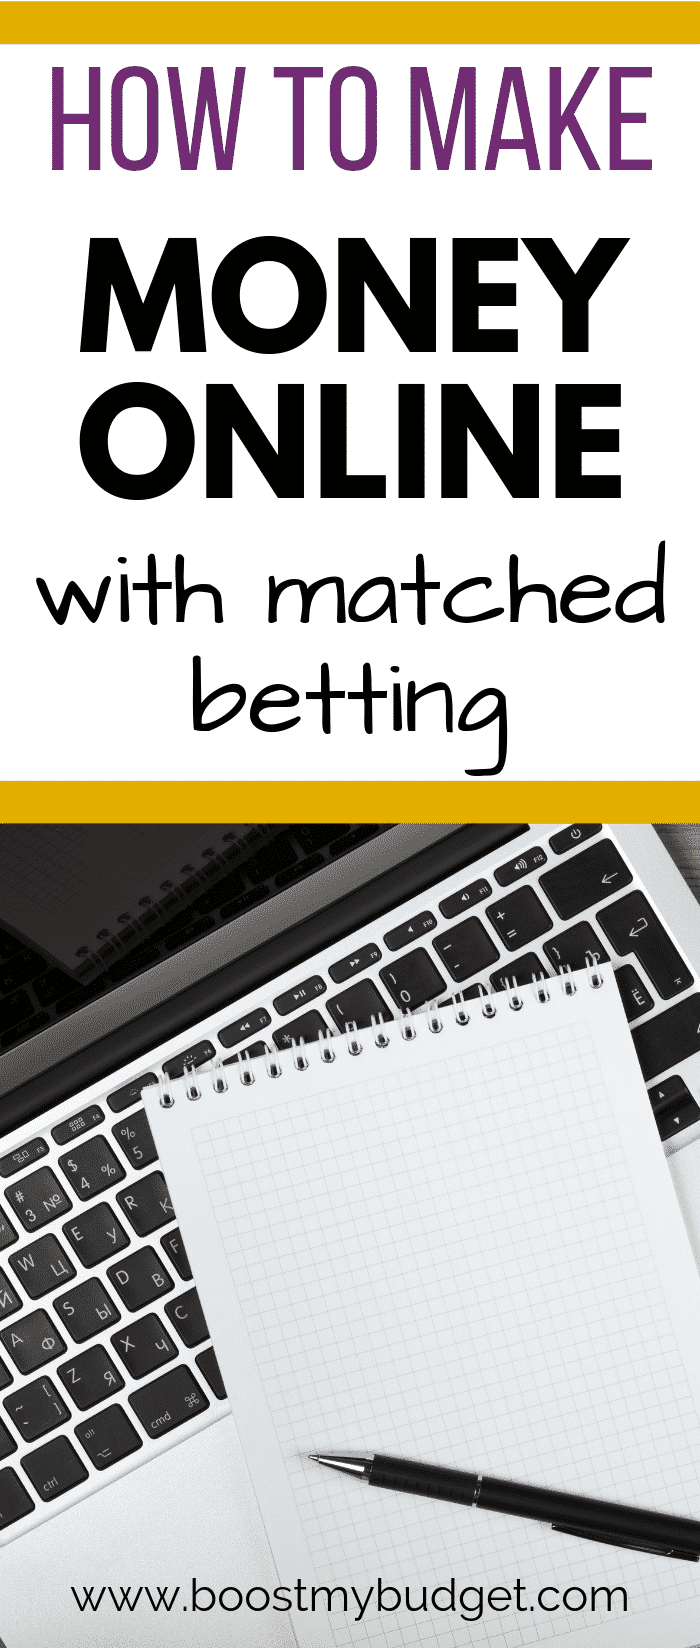 Wondering how to use matched betting to make money? This is a great way to make money online for a sports fan or anyone who can use the computer and wants to work from home! Read this case study to find out how much you can make!